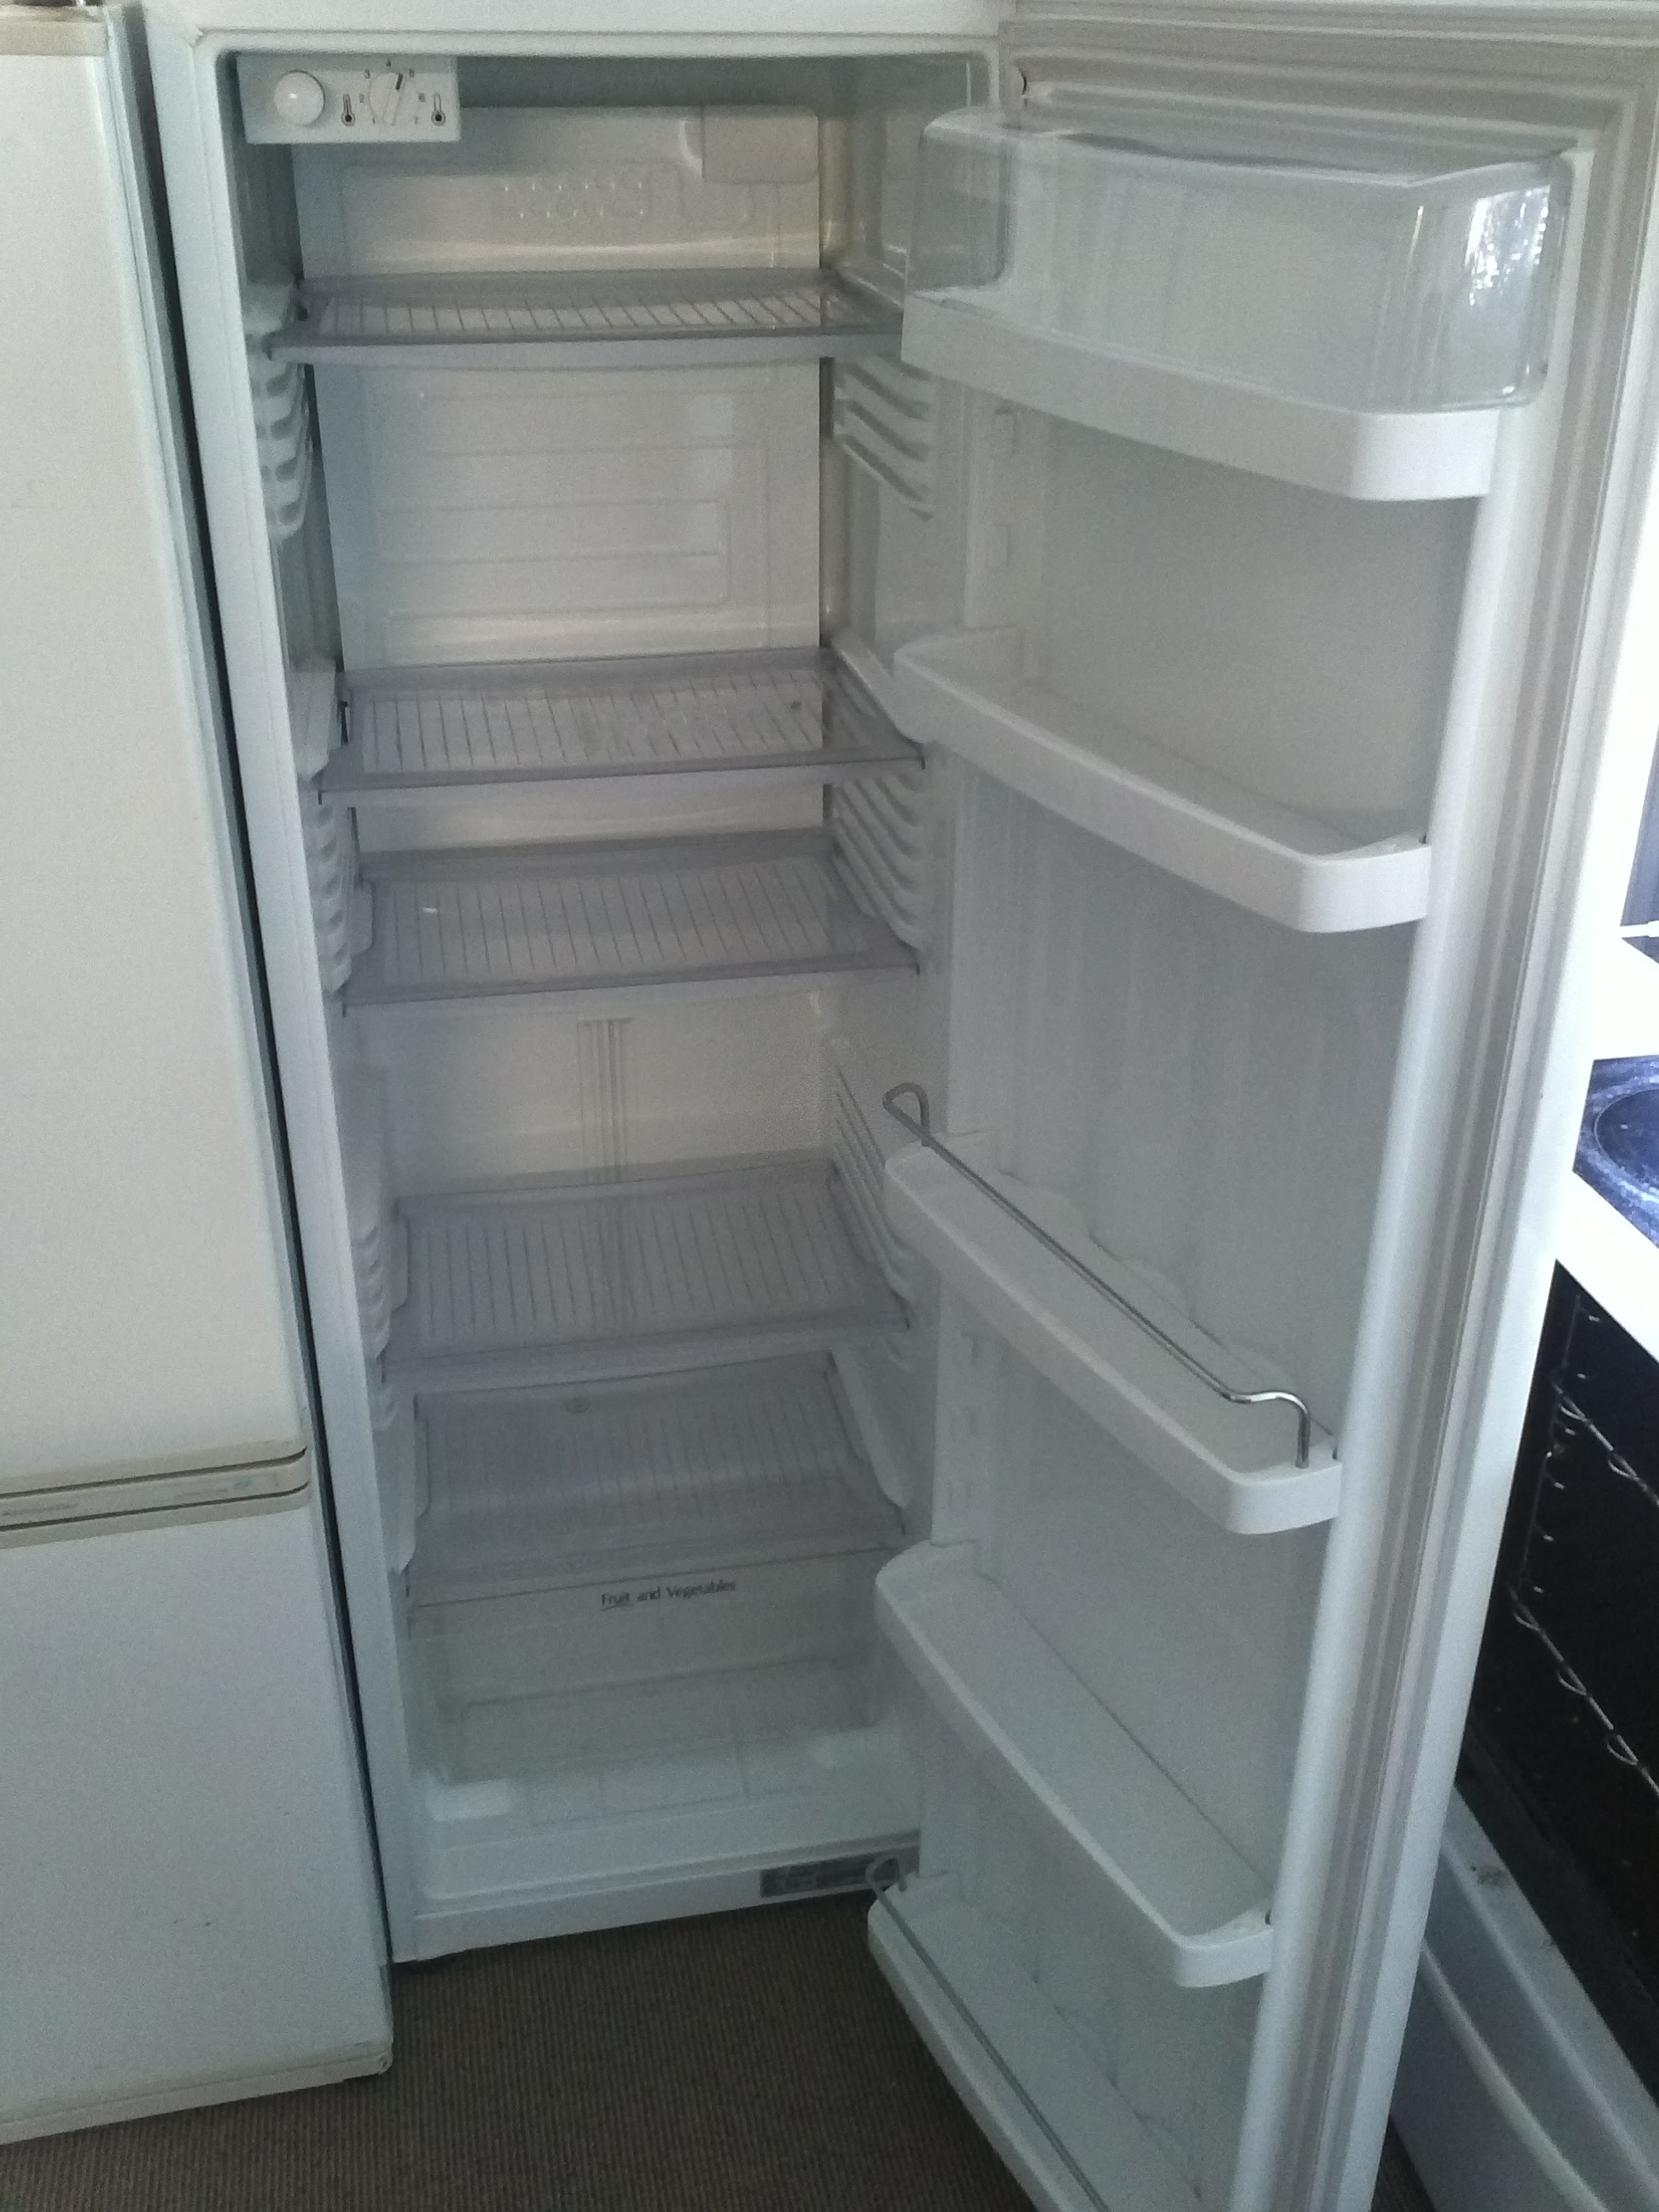 Party Fridge 270 litre